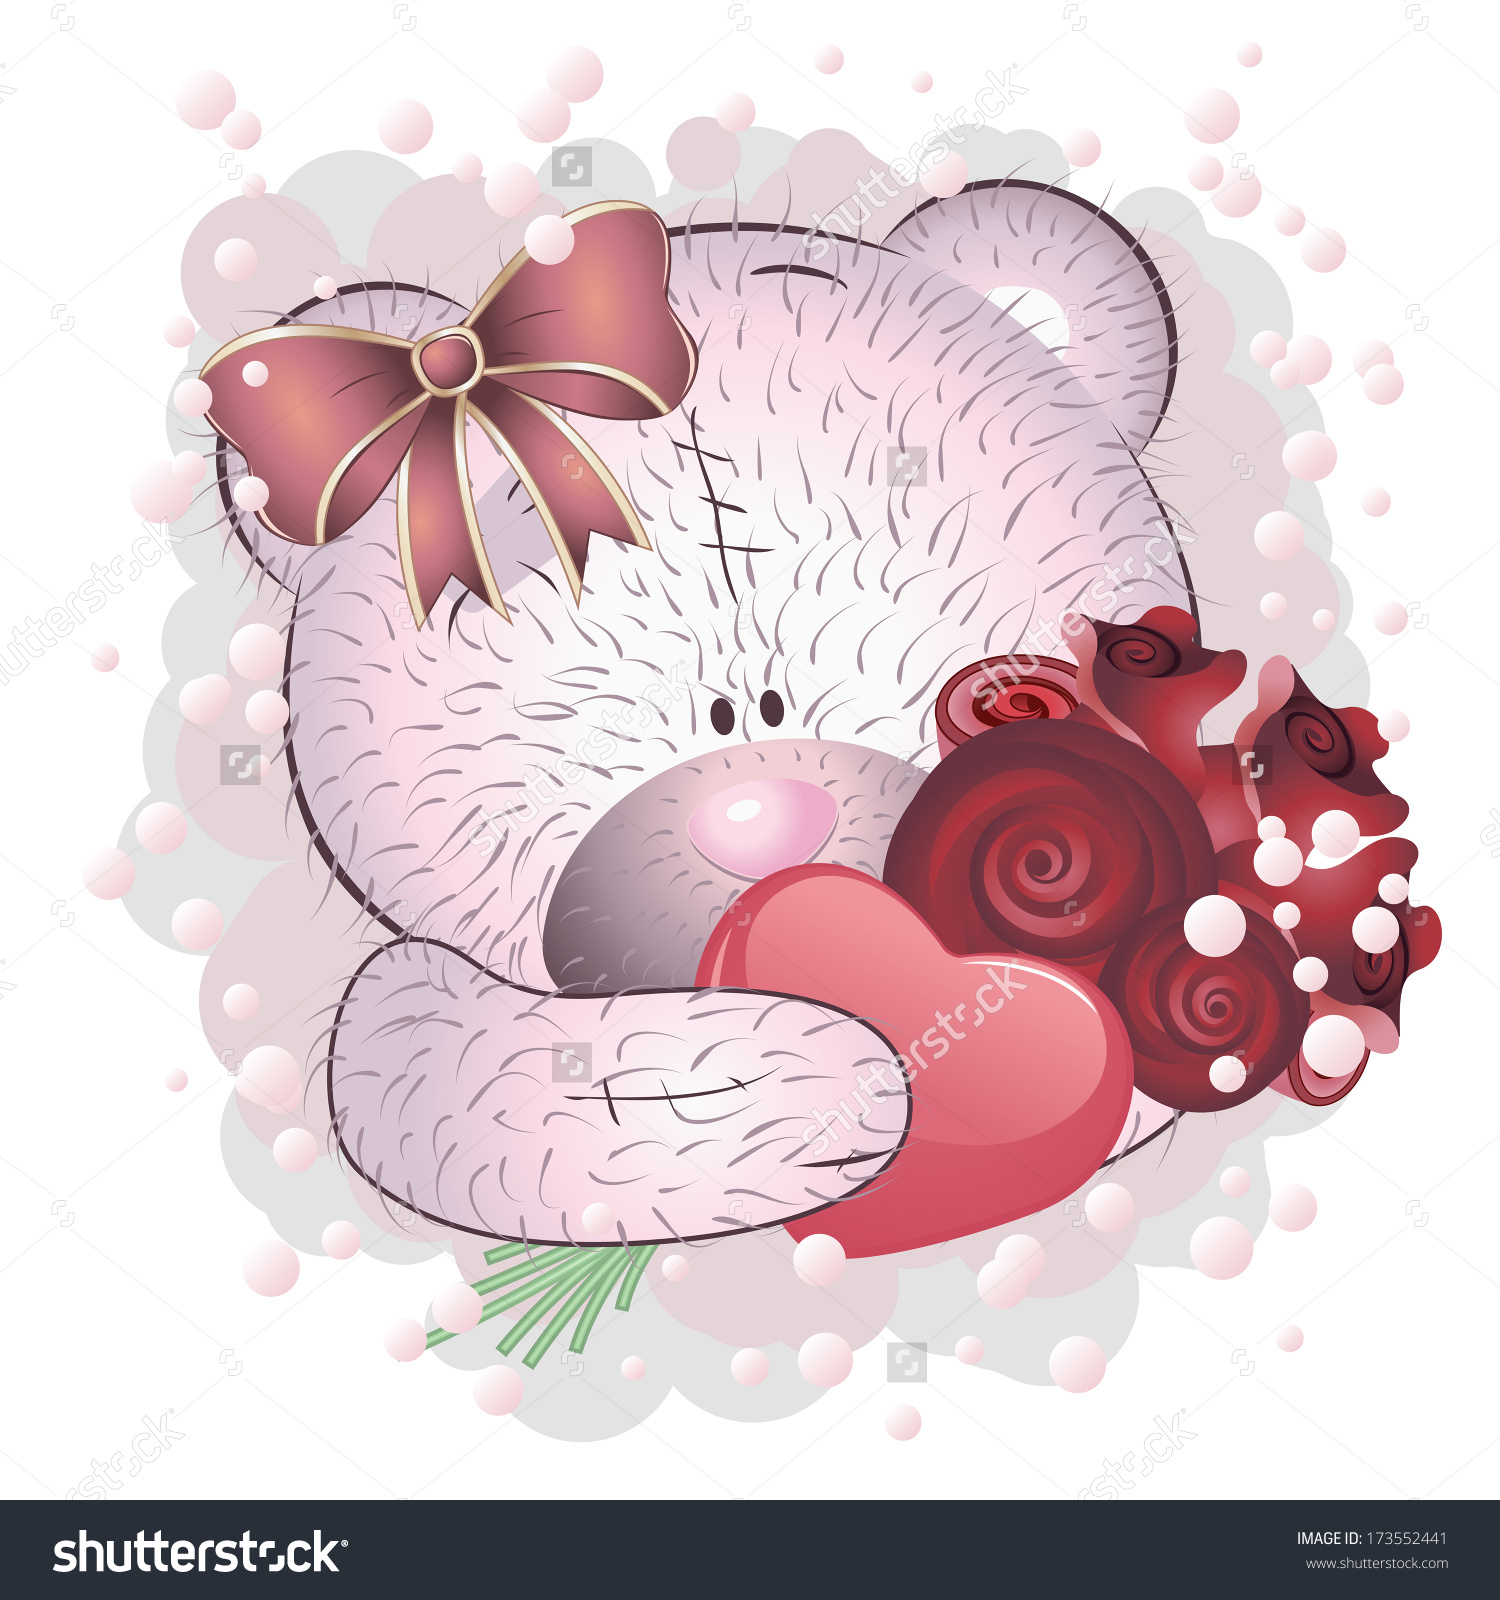 cute bears with pink flowers clipart - Clipground